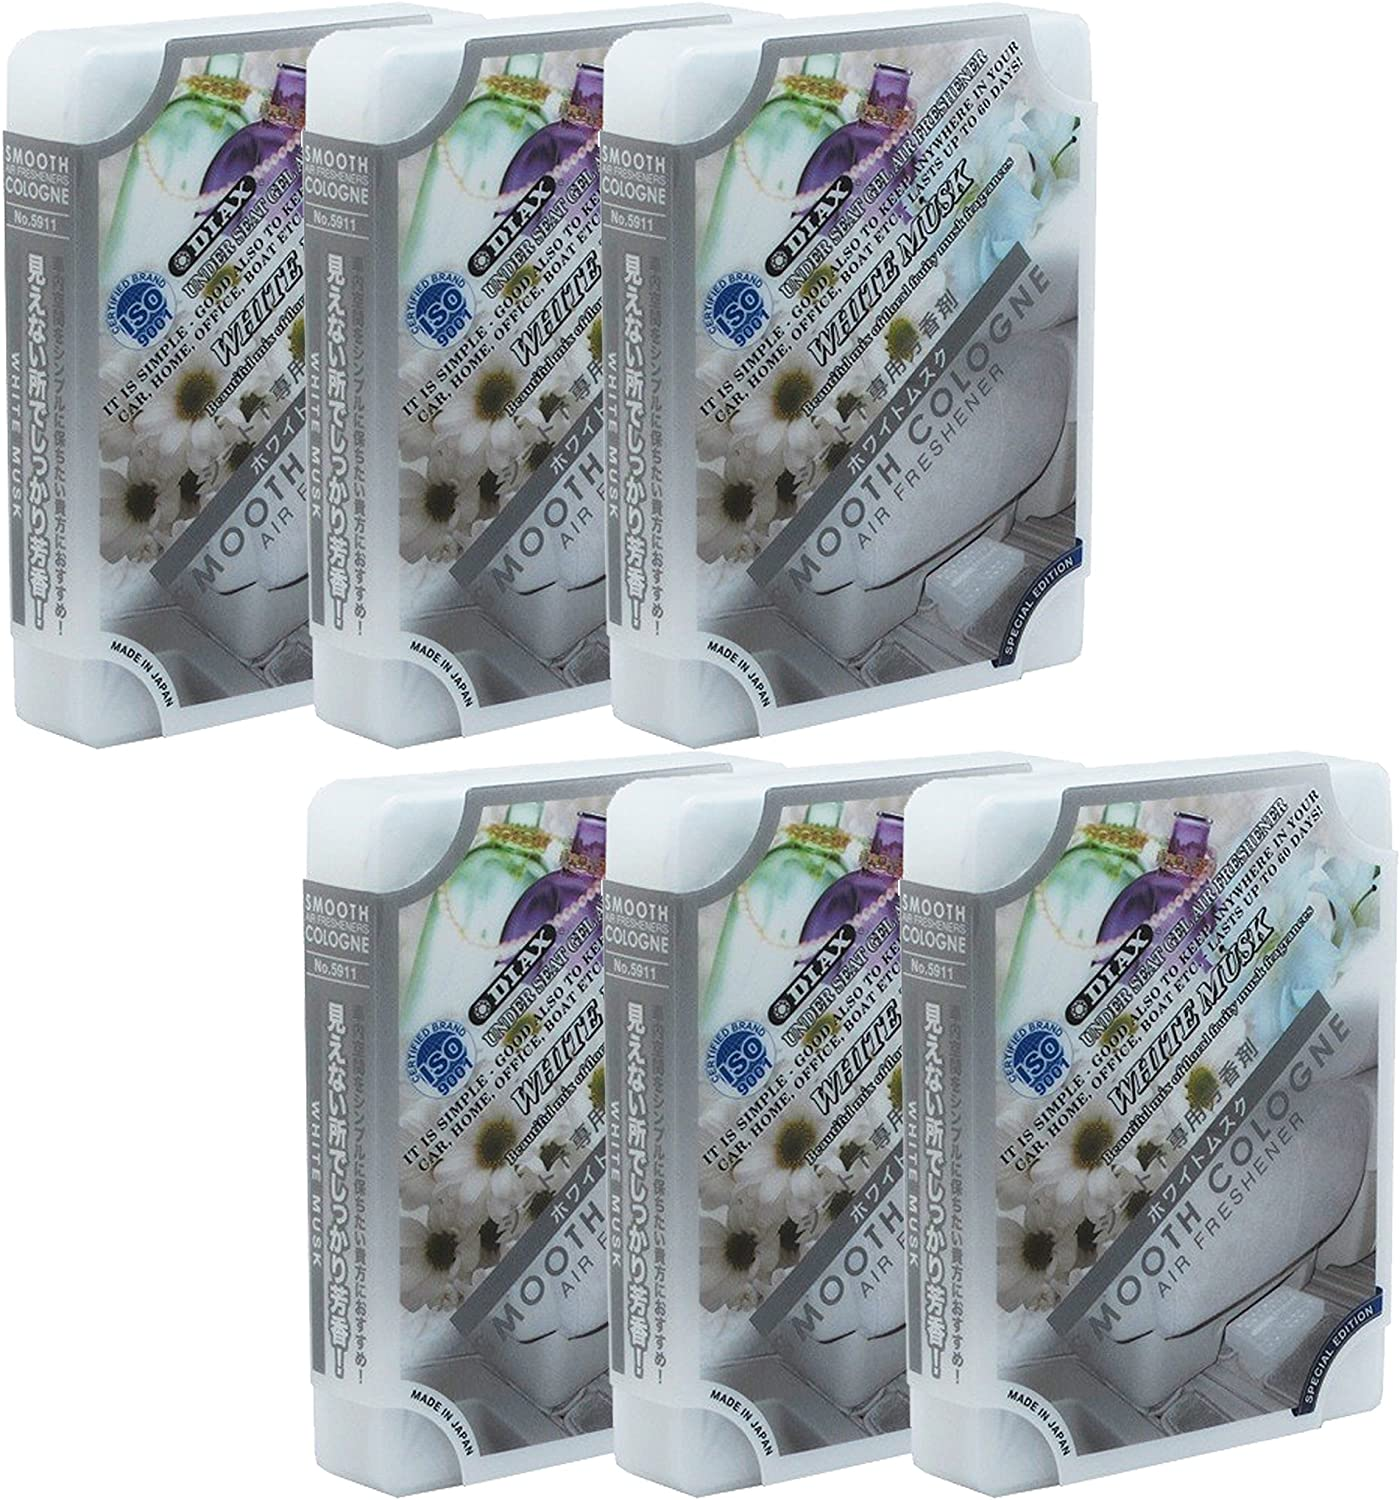 Smooth Cologne 6-Pack Home/Office/Car/auto White Musk Scent Luxury Air Freshener JDM Genuine Diax Japan